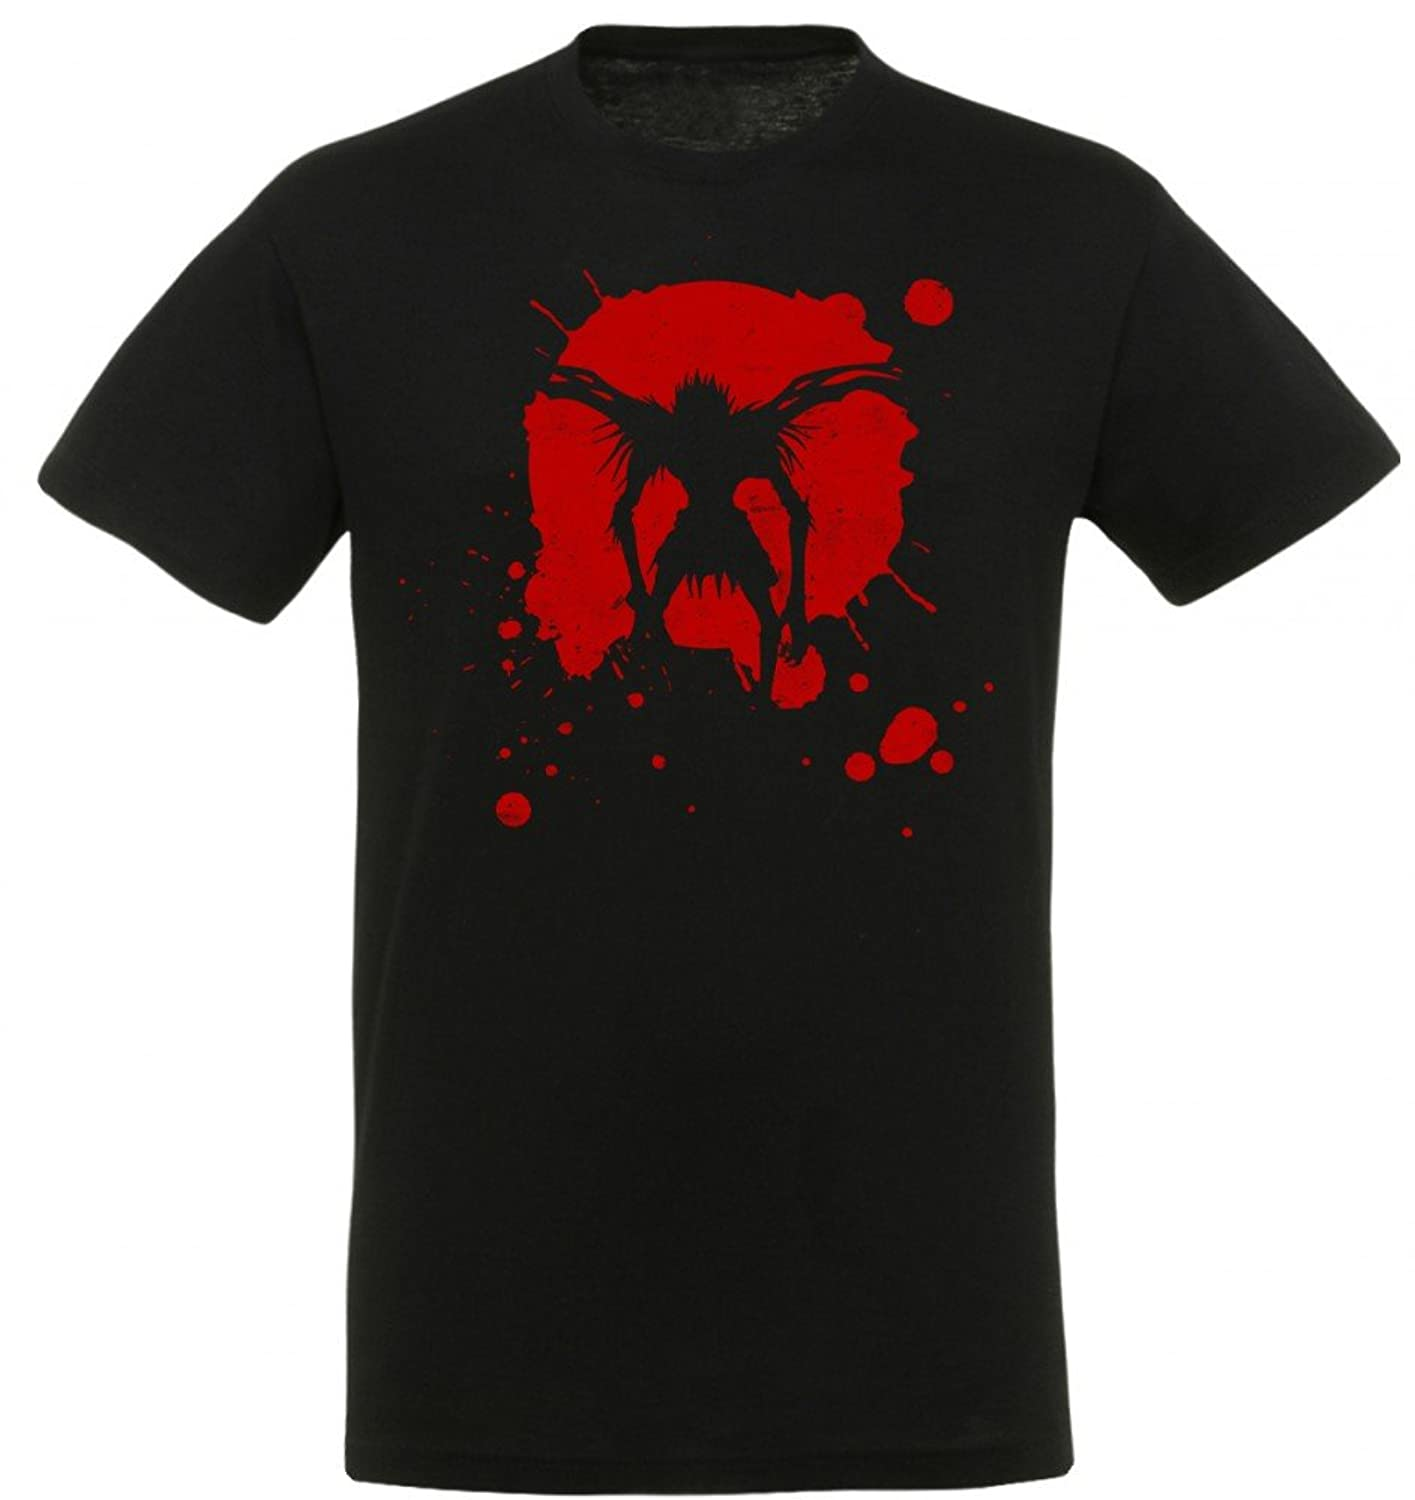 Death Note Herren Ryuk Splash T-Shirt Original 100% Baumwolle Schwarz Manga  Anime: Amazon.de: Bekleidung